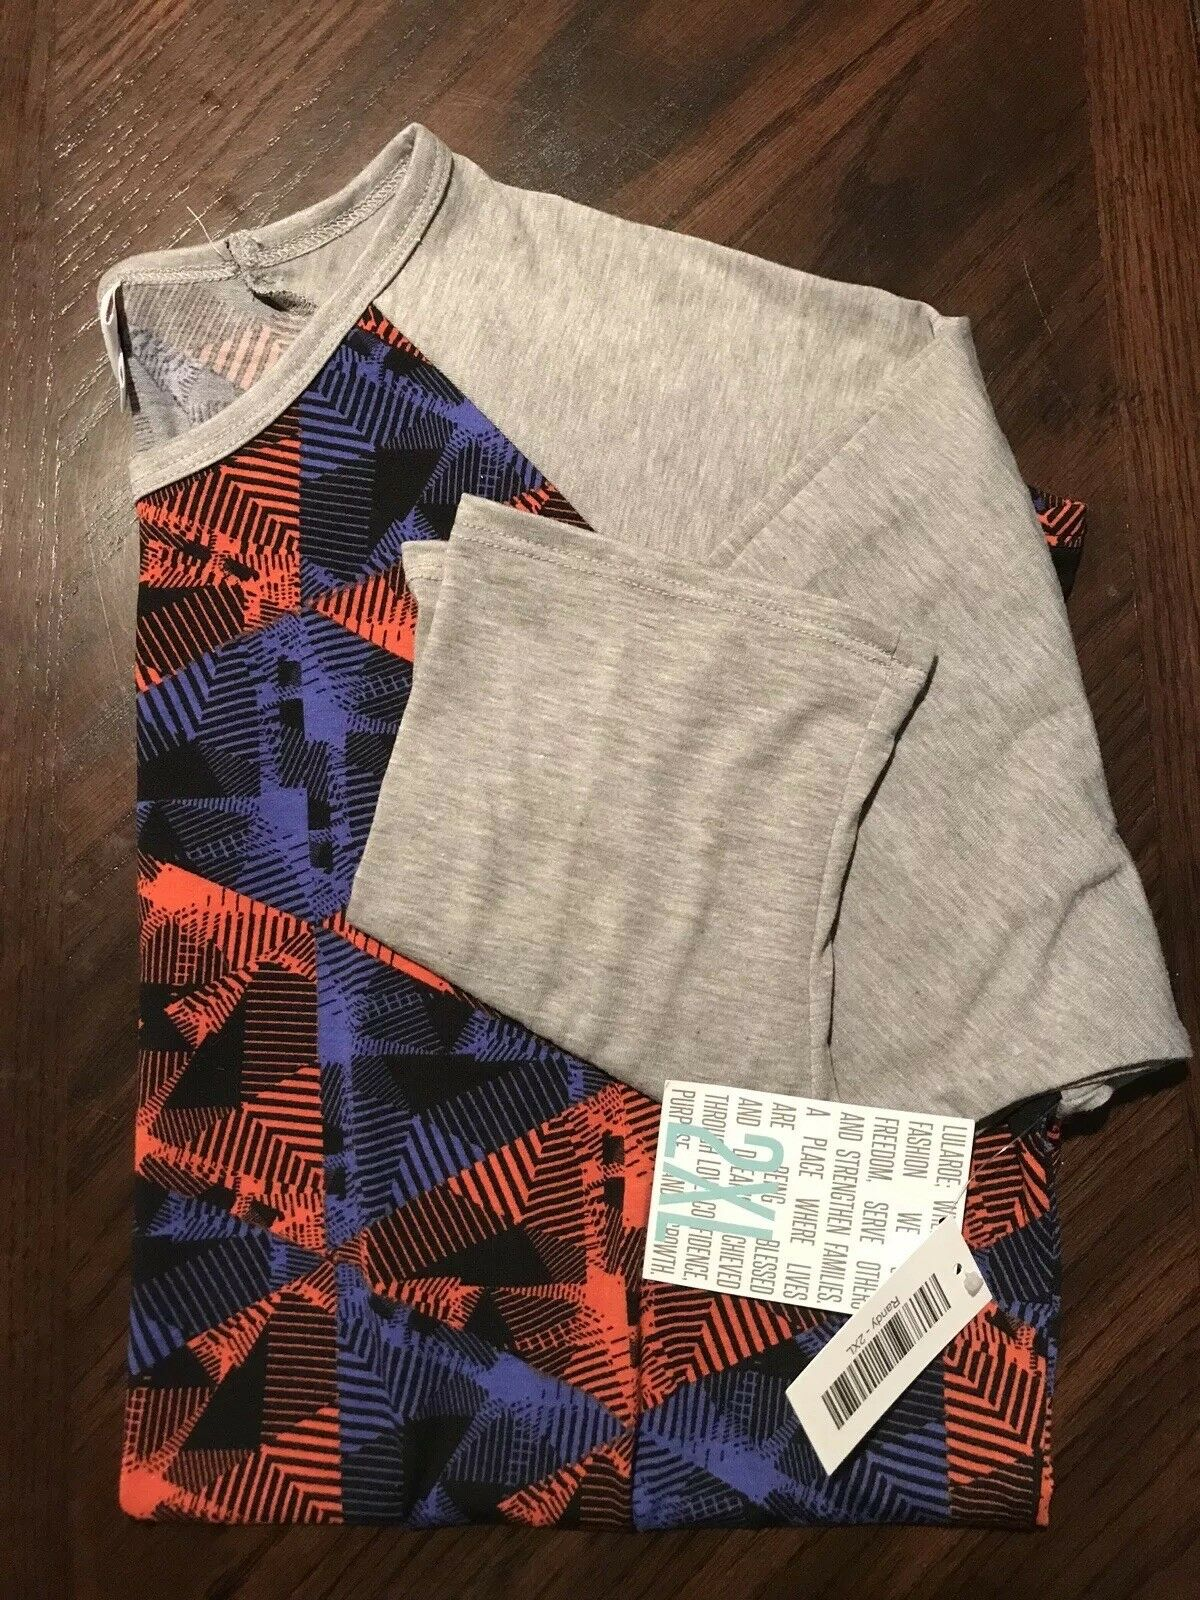 Lularoe Inventory Lot Mixed Items & Lots 131 Pieces